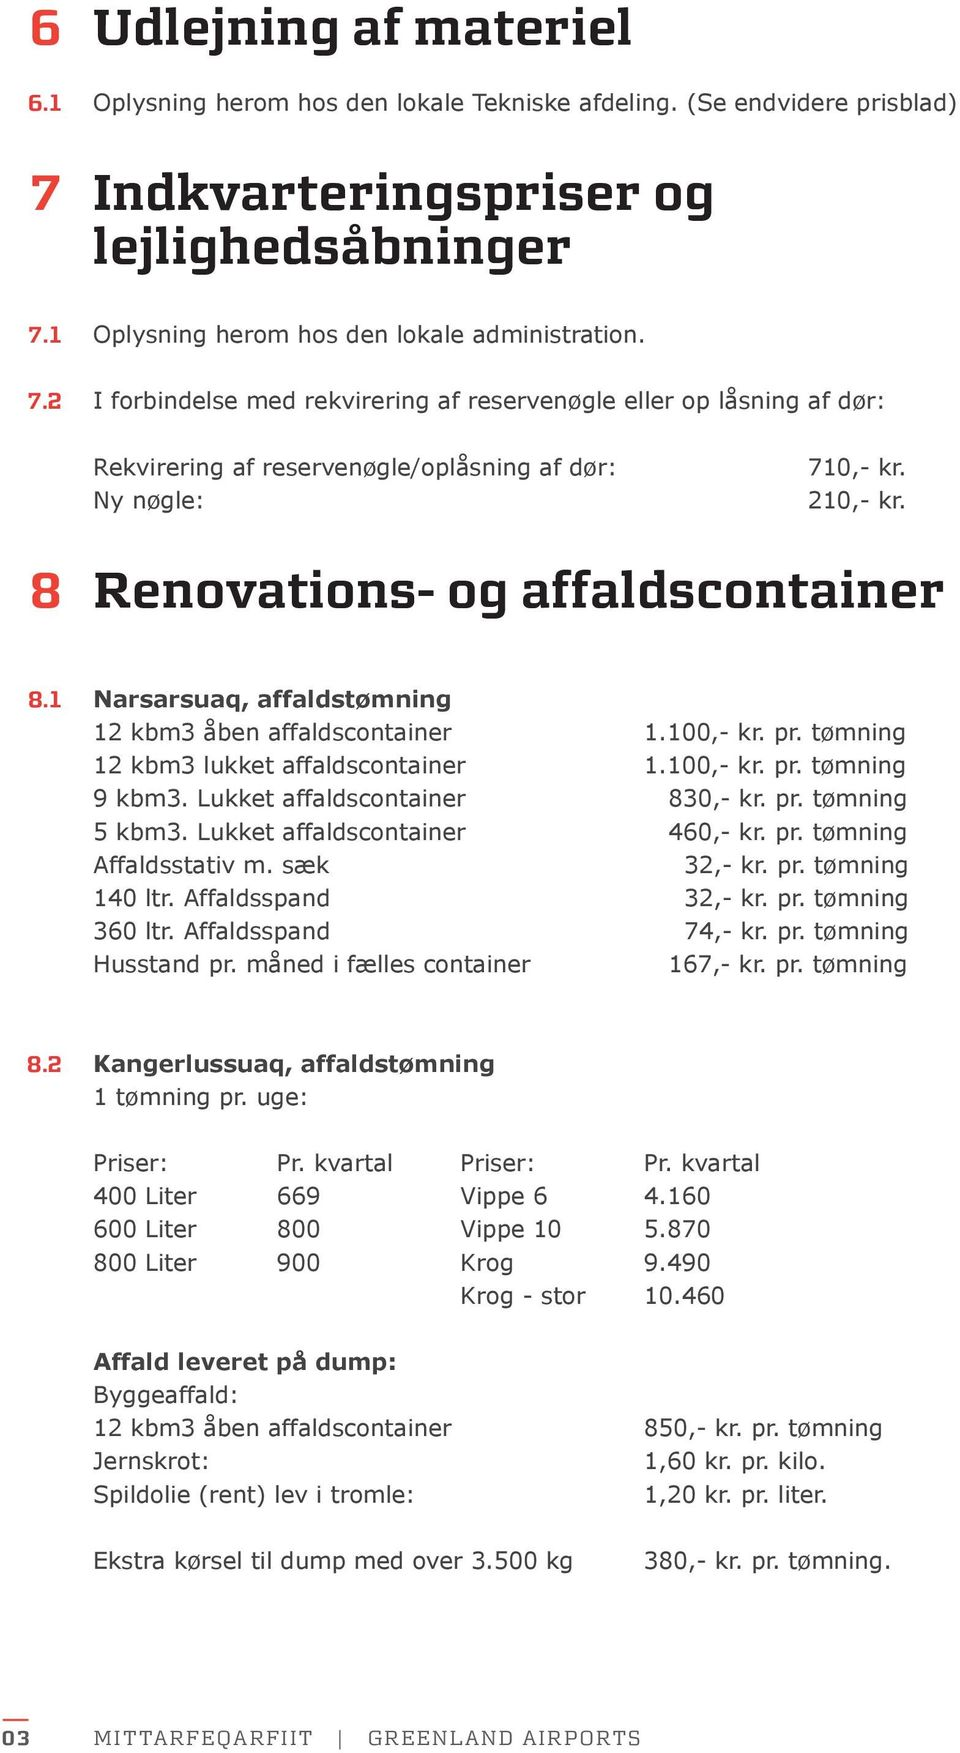 210,- kr. 8 Renovations- og affaldscontainer 8.1 Narsarsuaq, affaldstømning 12 kbm3 åben affaldscontainer 1.100,- kr. pr. tømning 12 kbm3 lukket affaldscontainer 1.100,- kr. pr. tømning 9 kbm3.